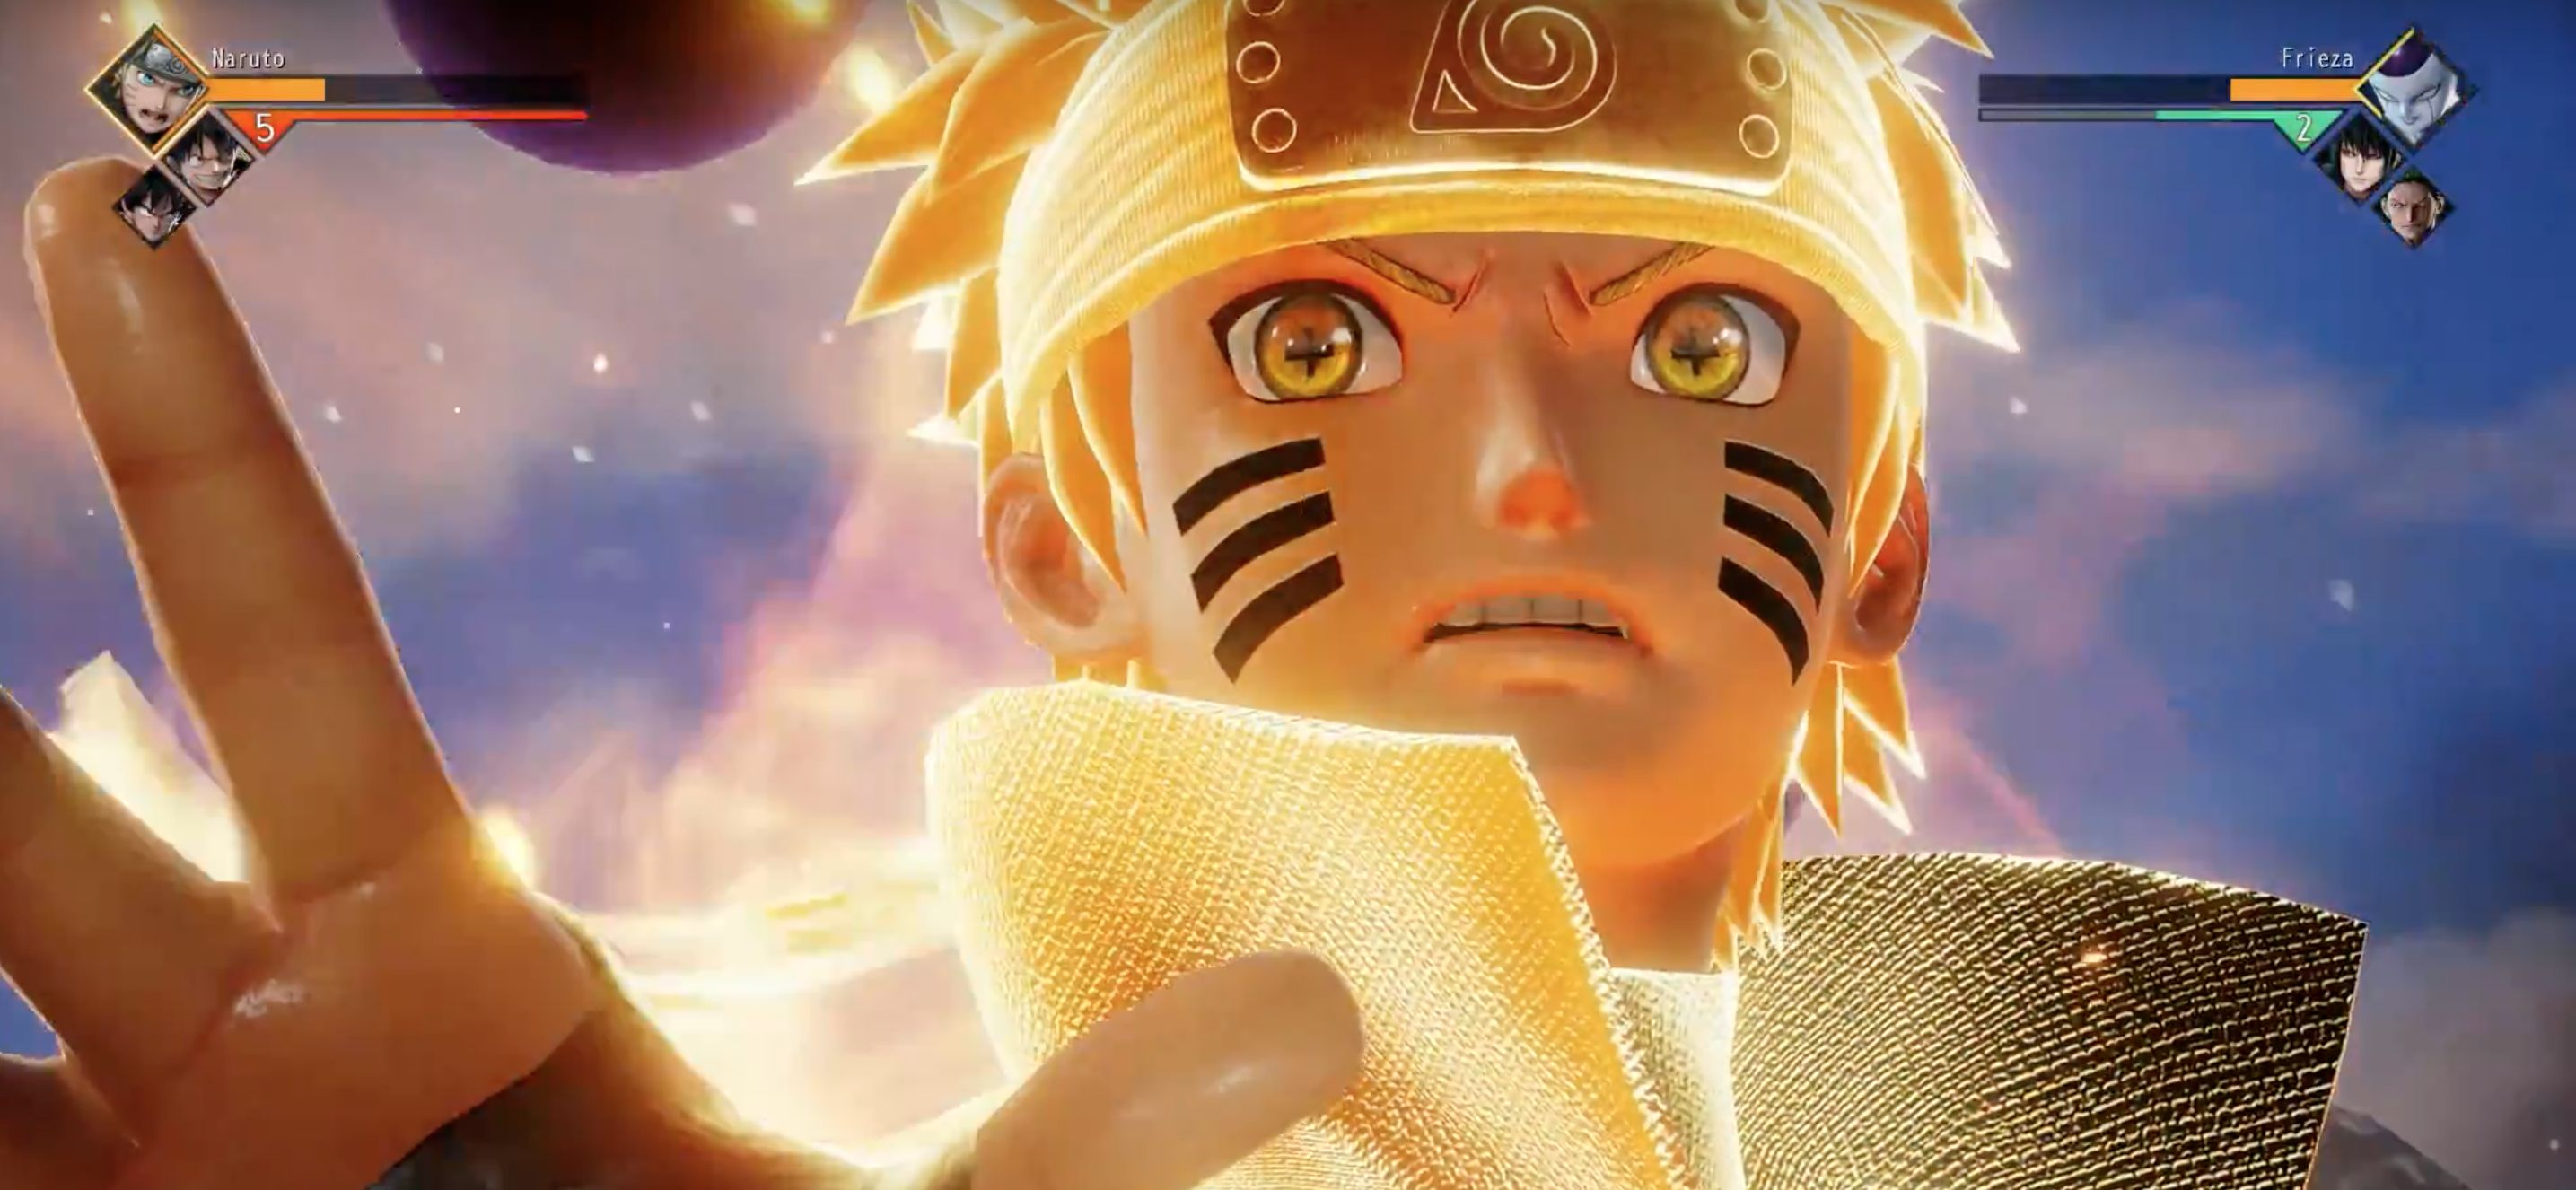 Naruto's command of chakra is unequaled in his world. New Jump Force Gameplay Trailer Shows Dragon Ball One Piece And Naruto Heroes In Action